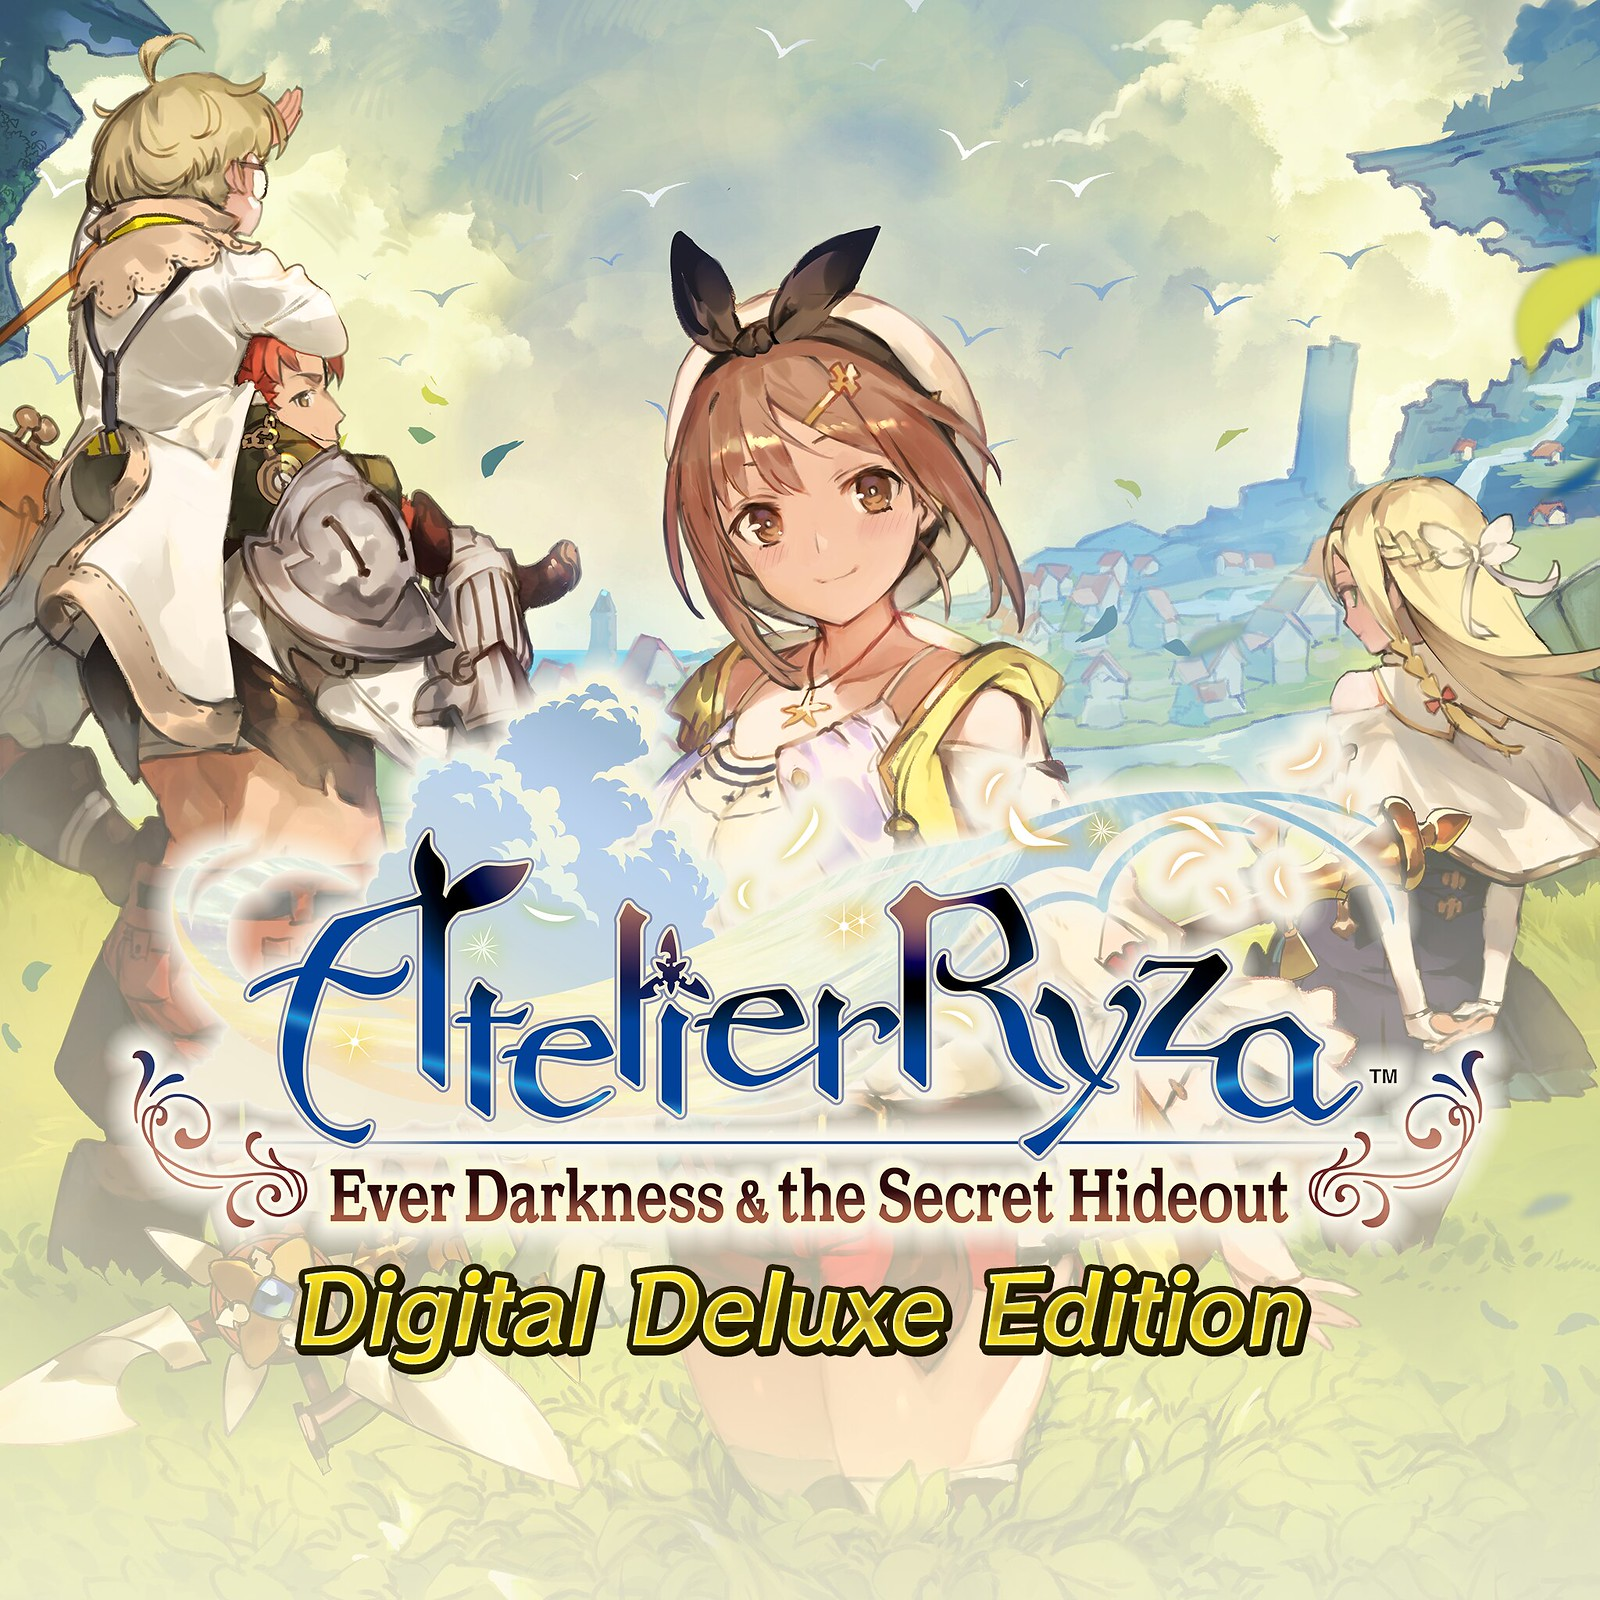 Thumbnail of Atelier Ryza: Digital Deluxe Edition on PS4